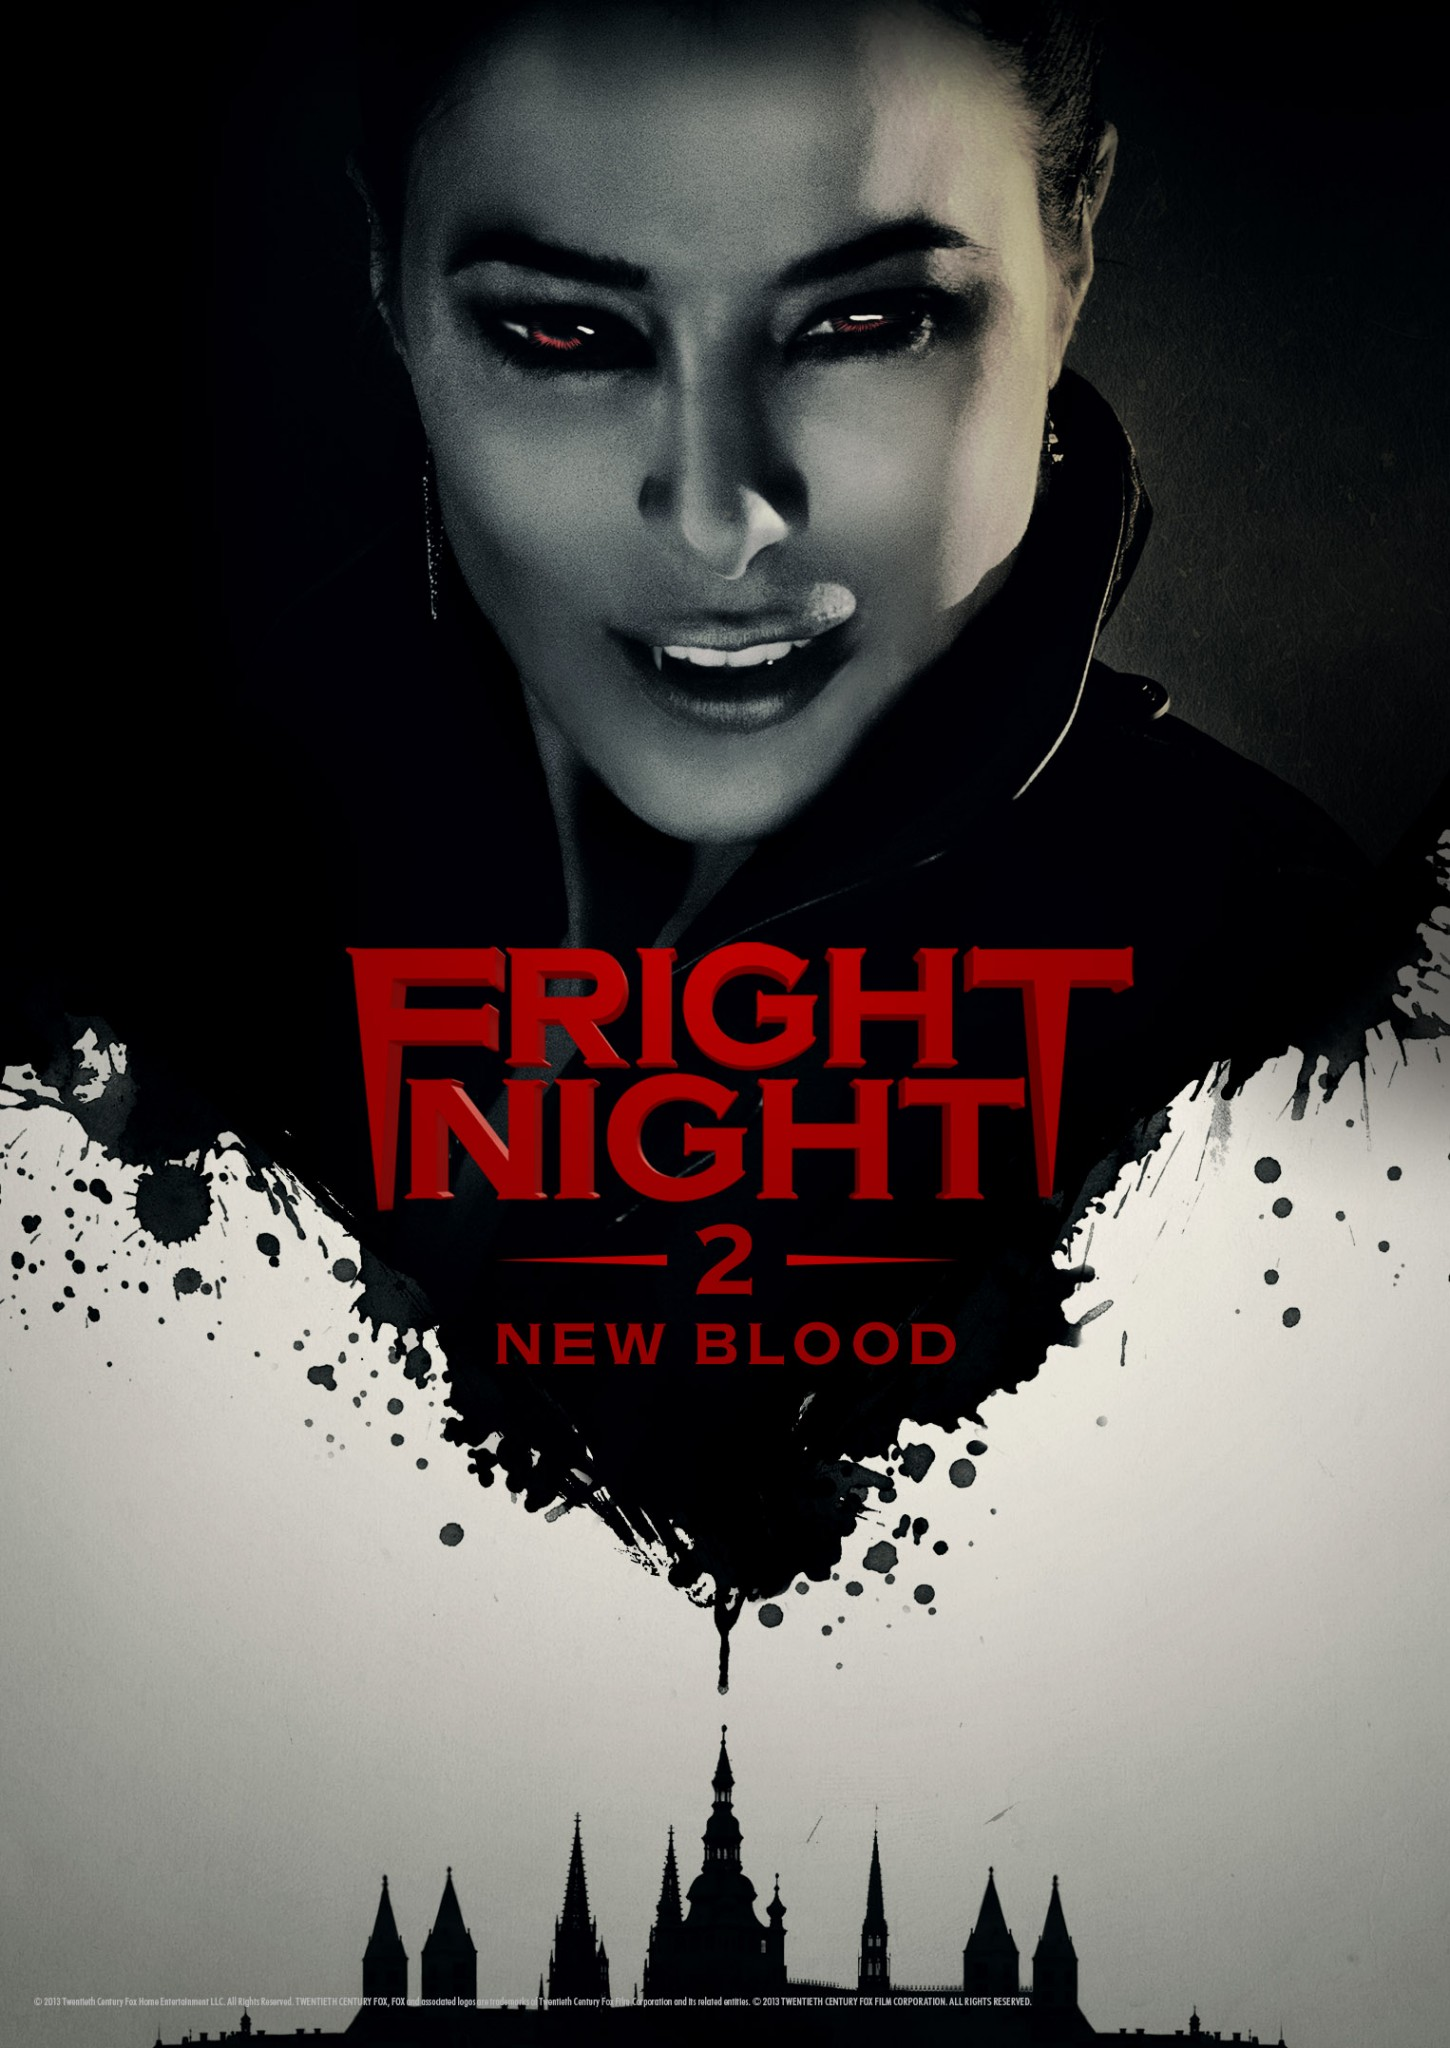 Fright Night 2 (2013) English BRRip 720p HD